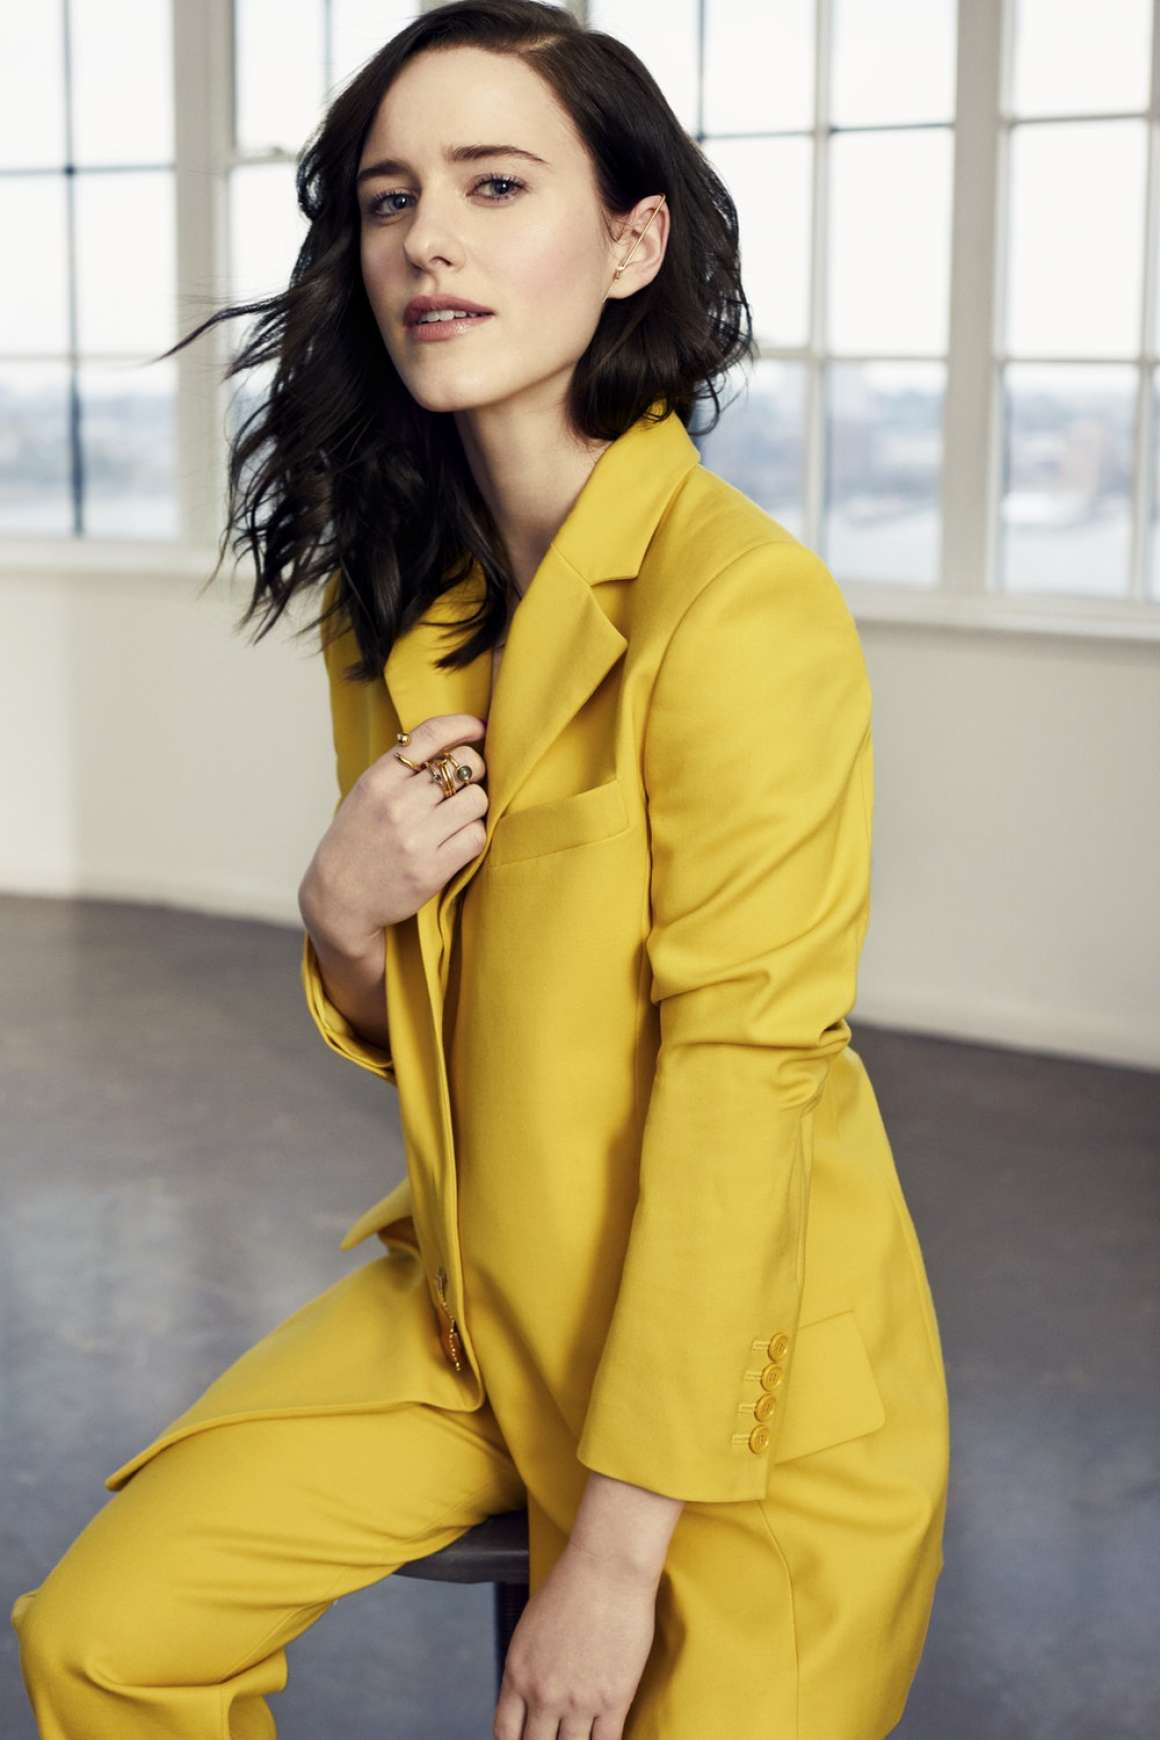 Rachel Brosnahan – Bustle Magazine (January 2019)